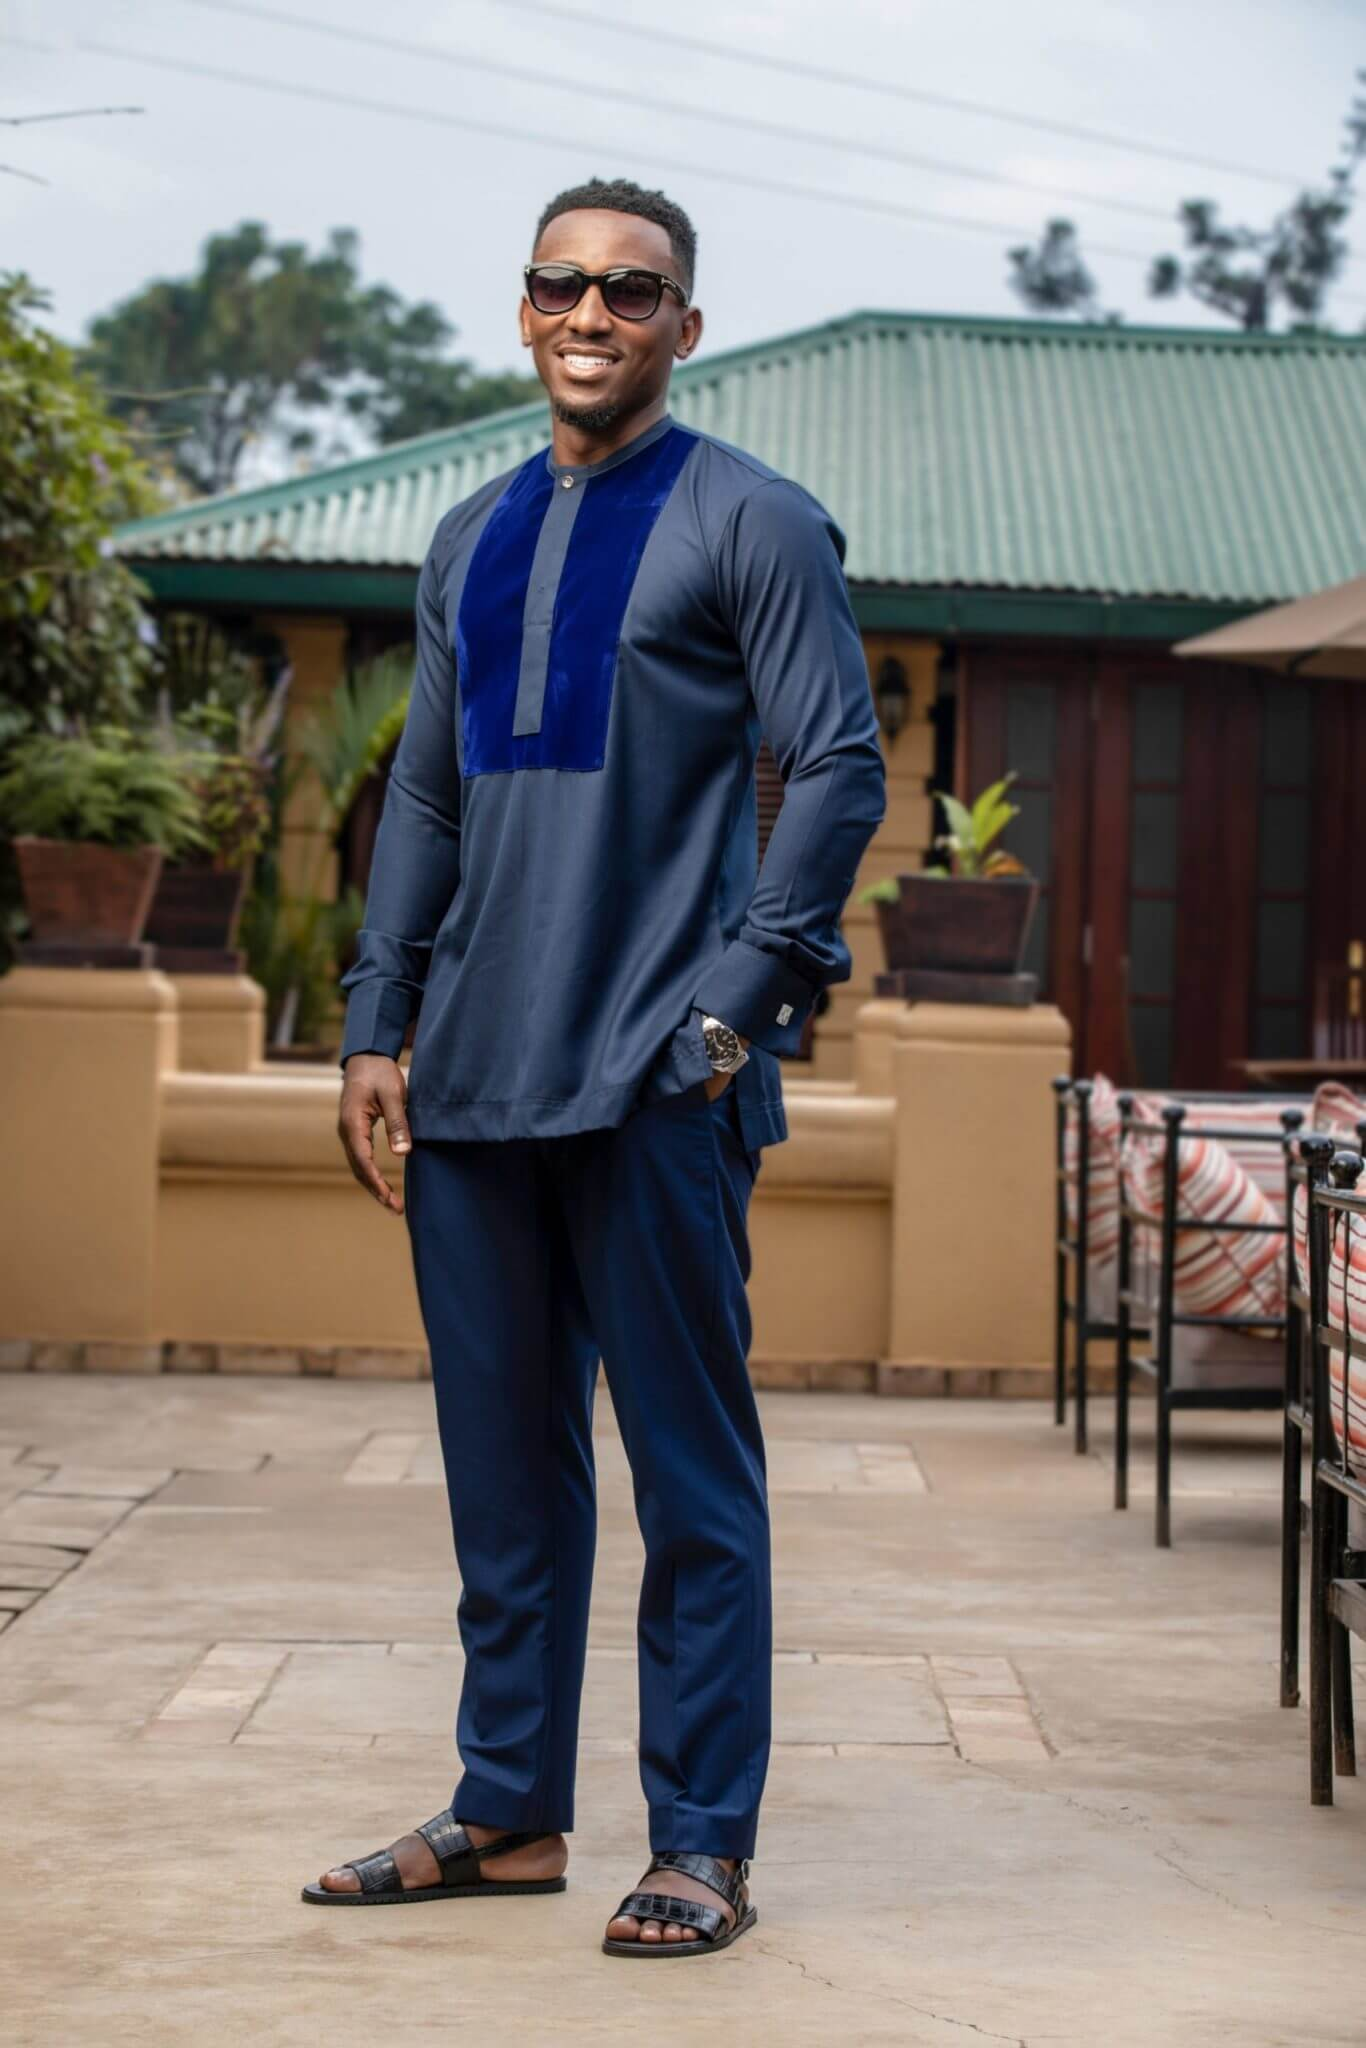 3Larry Casual Kampala Menswear scaled 1 scaled